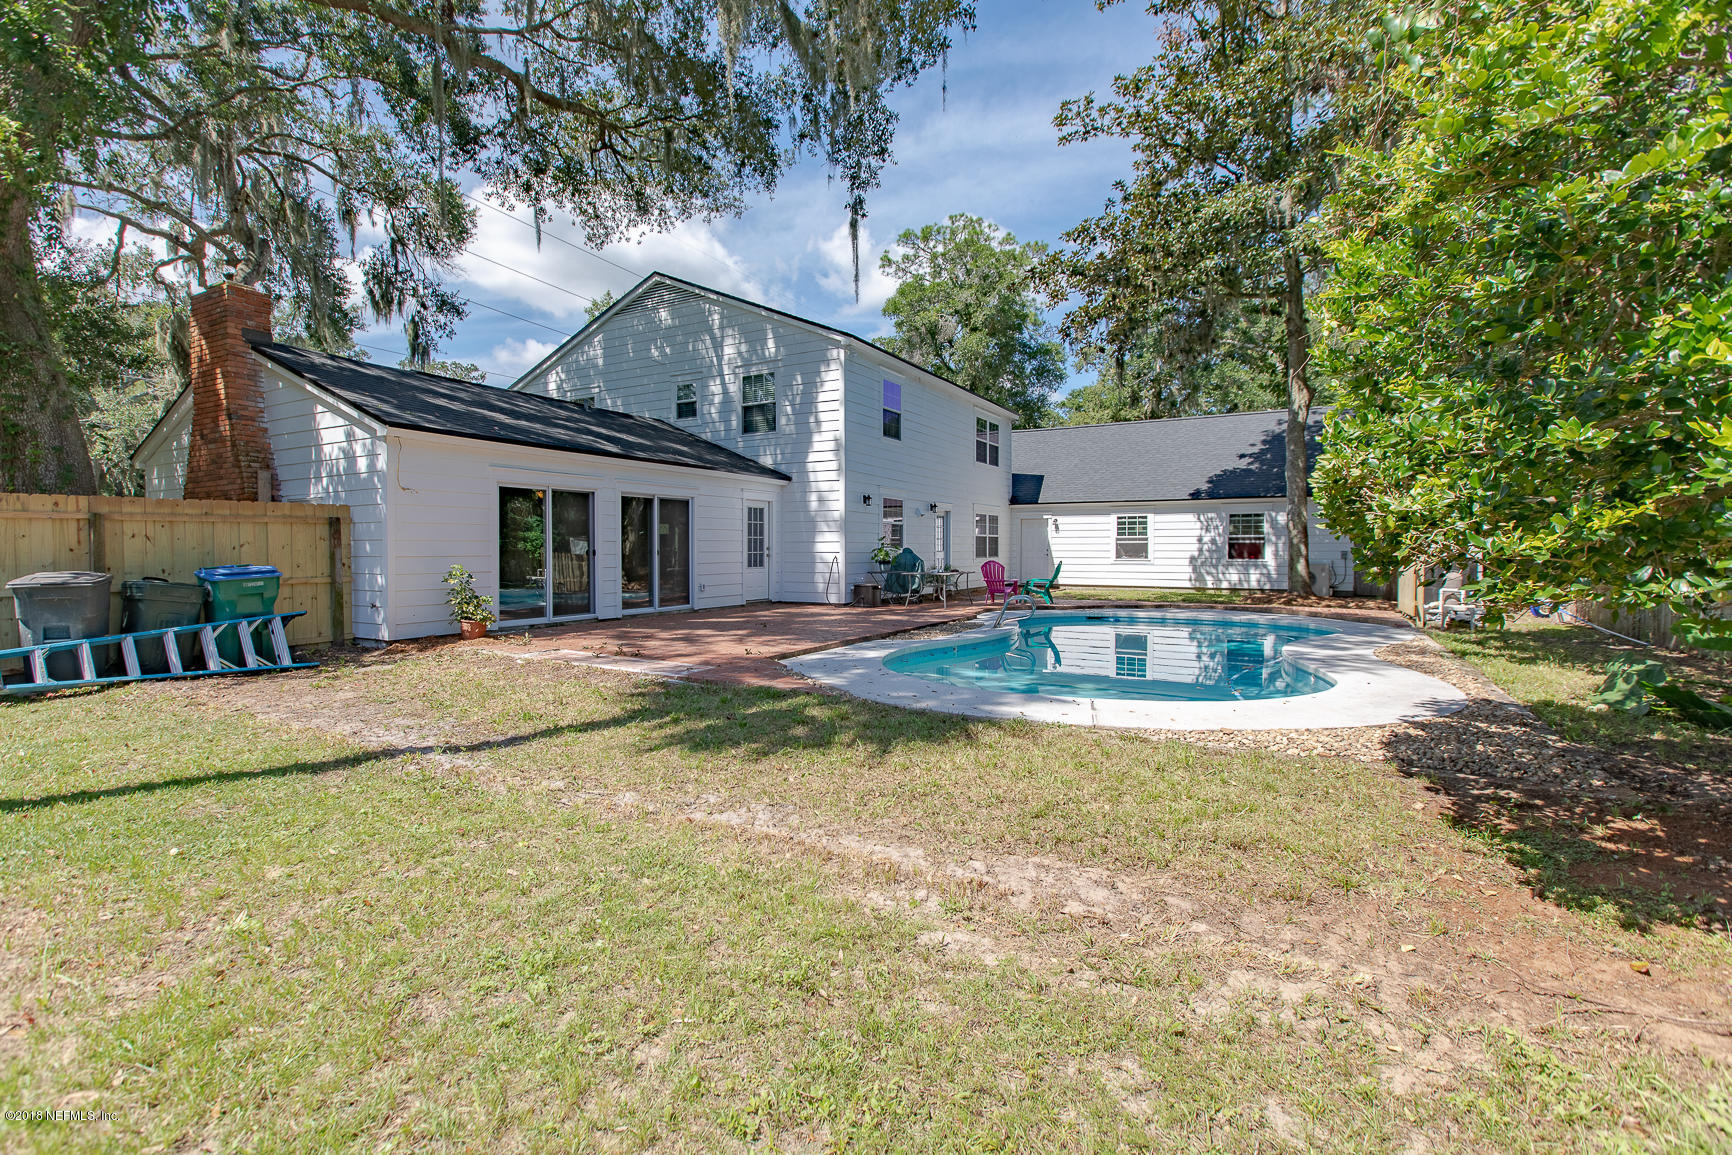 1902 FOREST, NEPTUNE BEACH, FLORIDA 32266, 5 Bedrooms Bedrooms, ,3 BathroomsBathrooms,Residential - single family,For sale,FOREST,952162